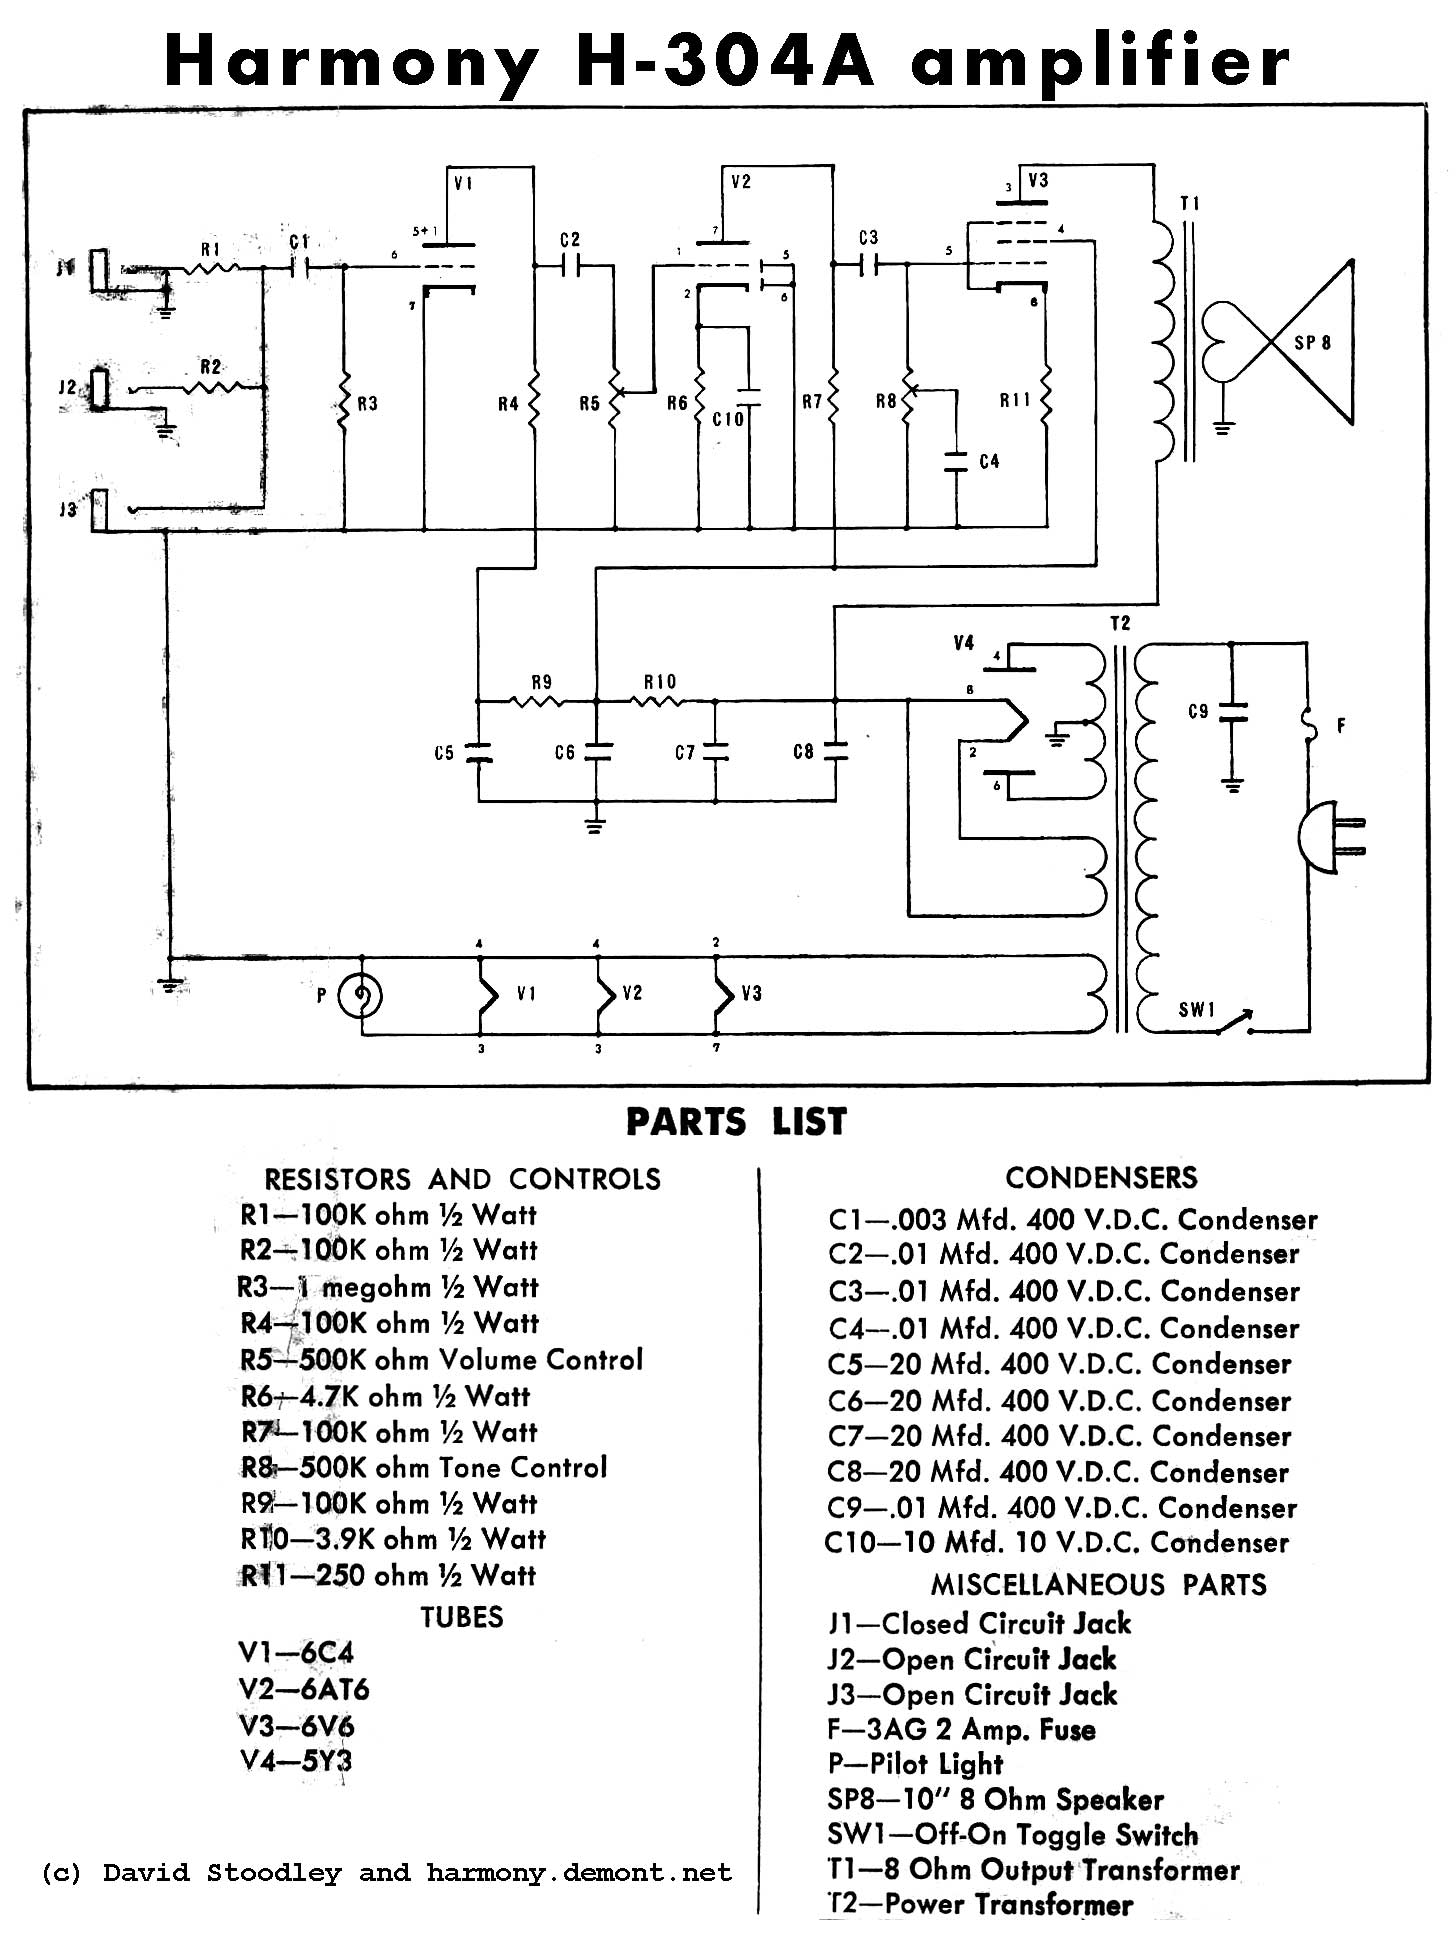 Harmony Bobkat Wiring Diagram - 8n Ford Points Wiring Diagram for Wiring  Diagram SchematicsWiring Diagram Schematics